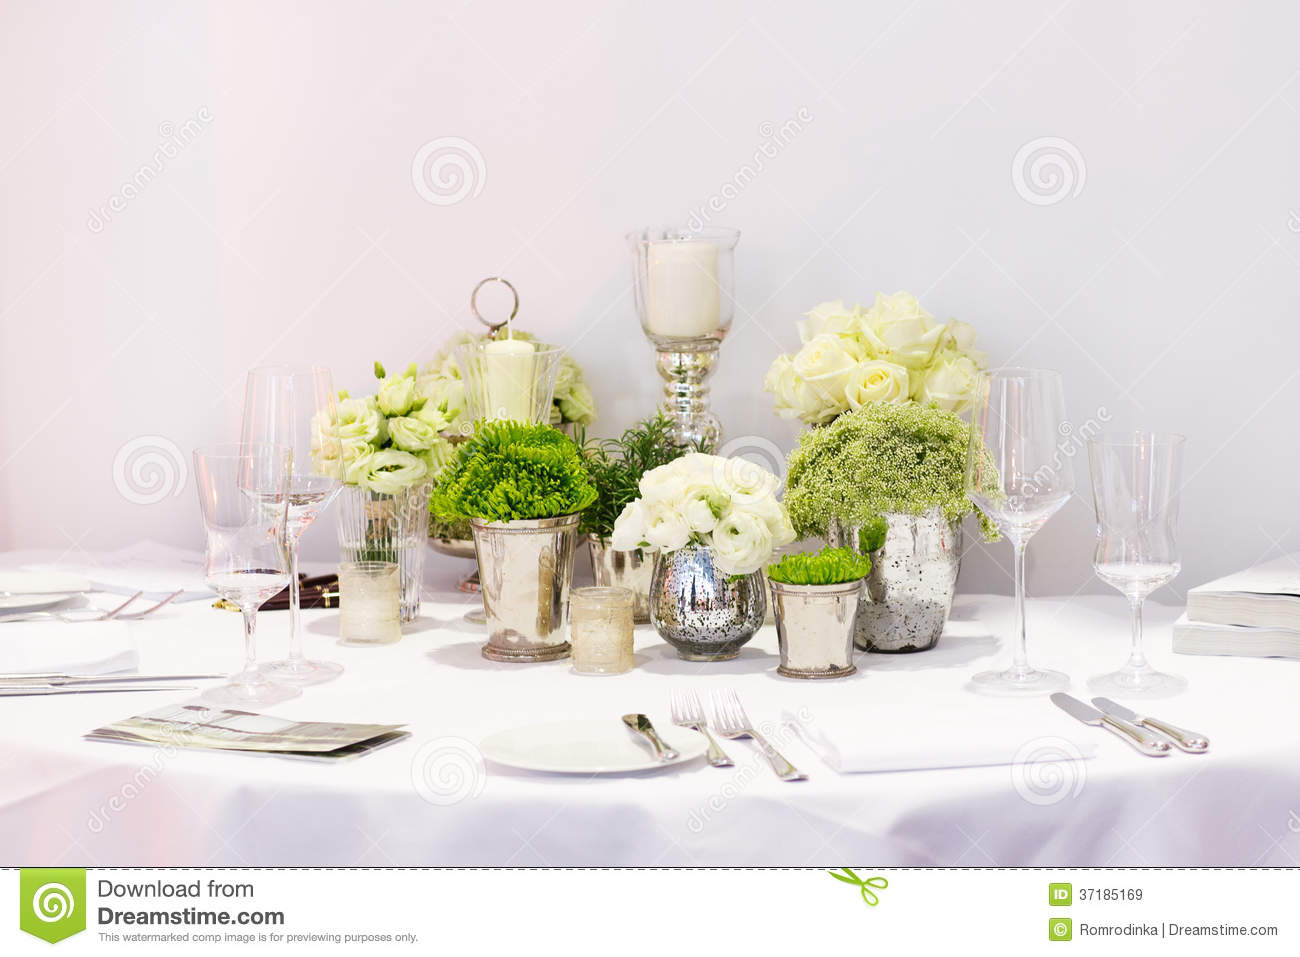 Elegant Table Set In Green And White For Wedding Or Event